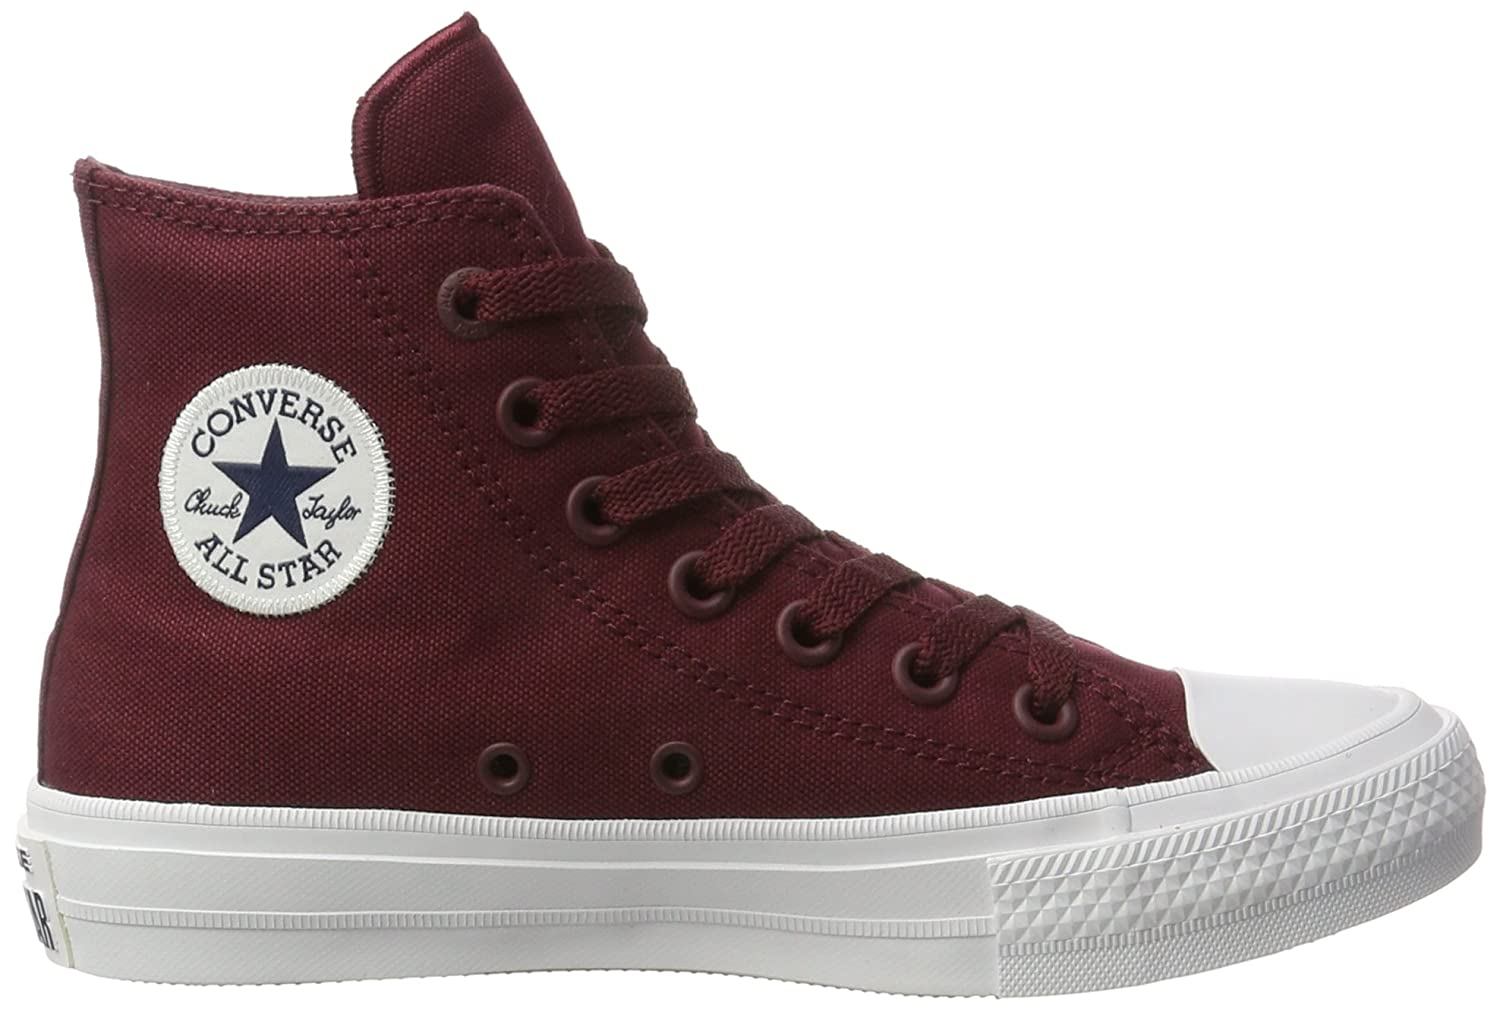 Converse Chuck Taylor All Star II Deep Bordeaux 8 B(M) US Women   6 D(M) US  Men  Amazon.in  Shoes   Handbags 97c7ae9e4